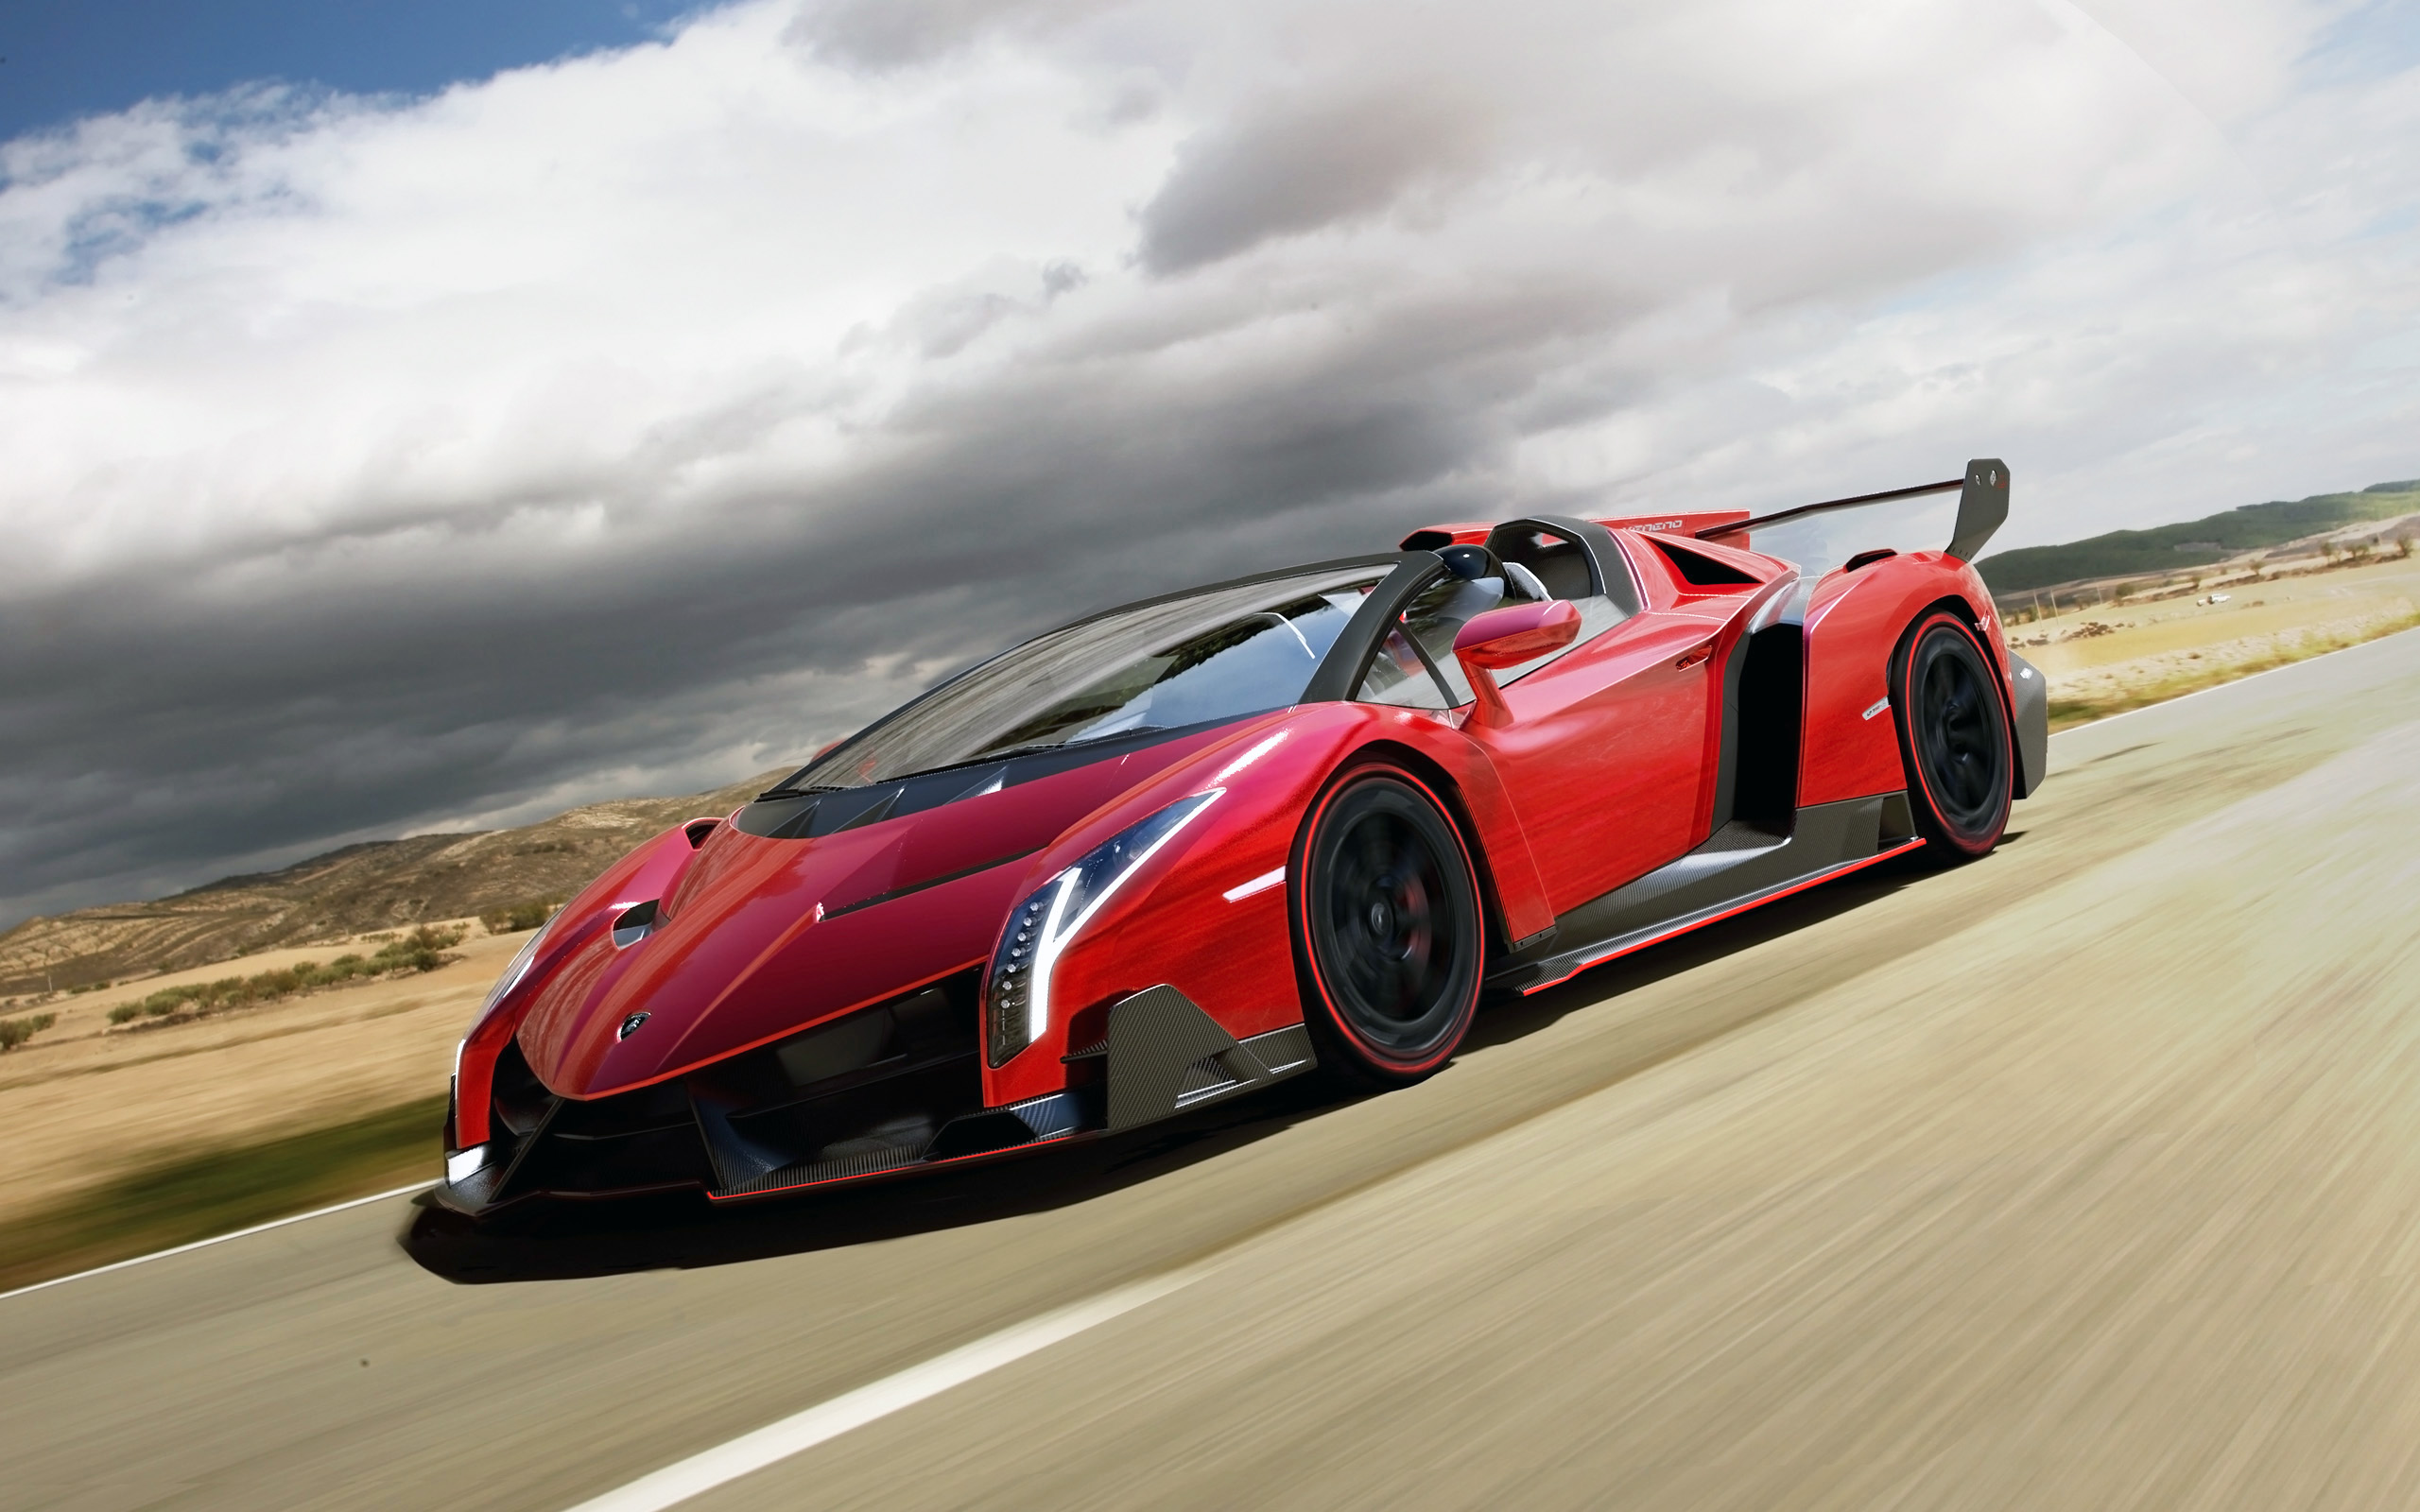 2014 Lamborghini Veneno Roadster Wallpaper HD Car Wallpapers 2560x1600